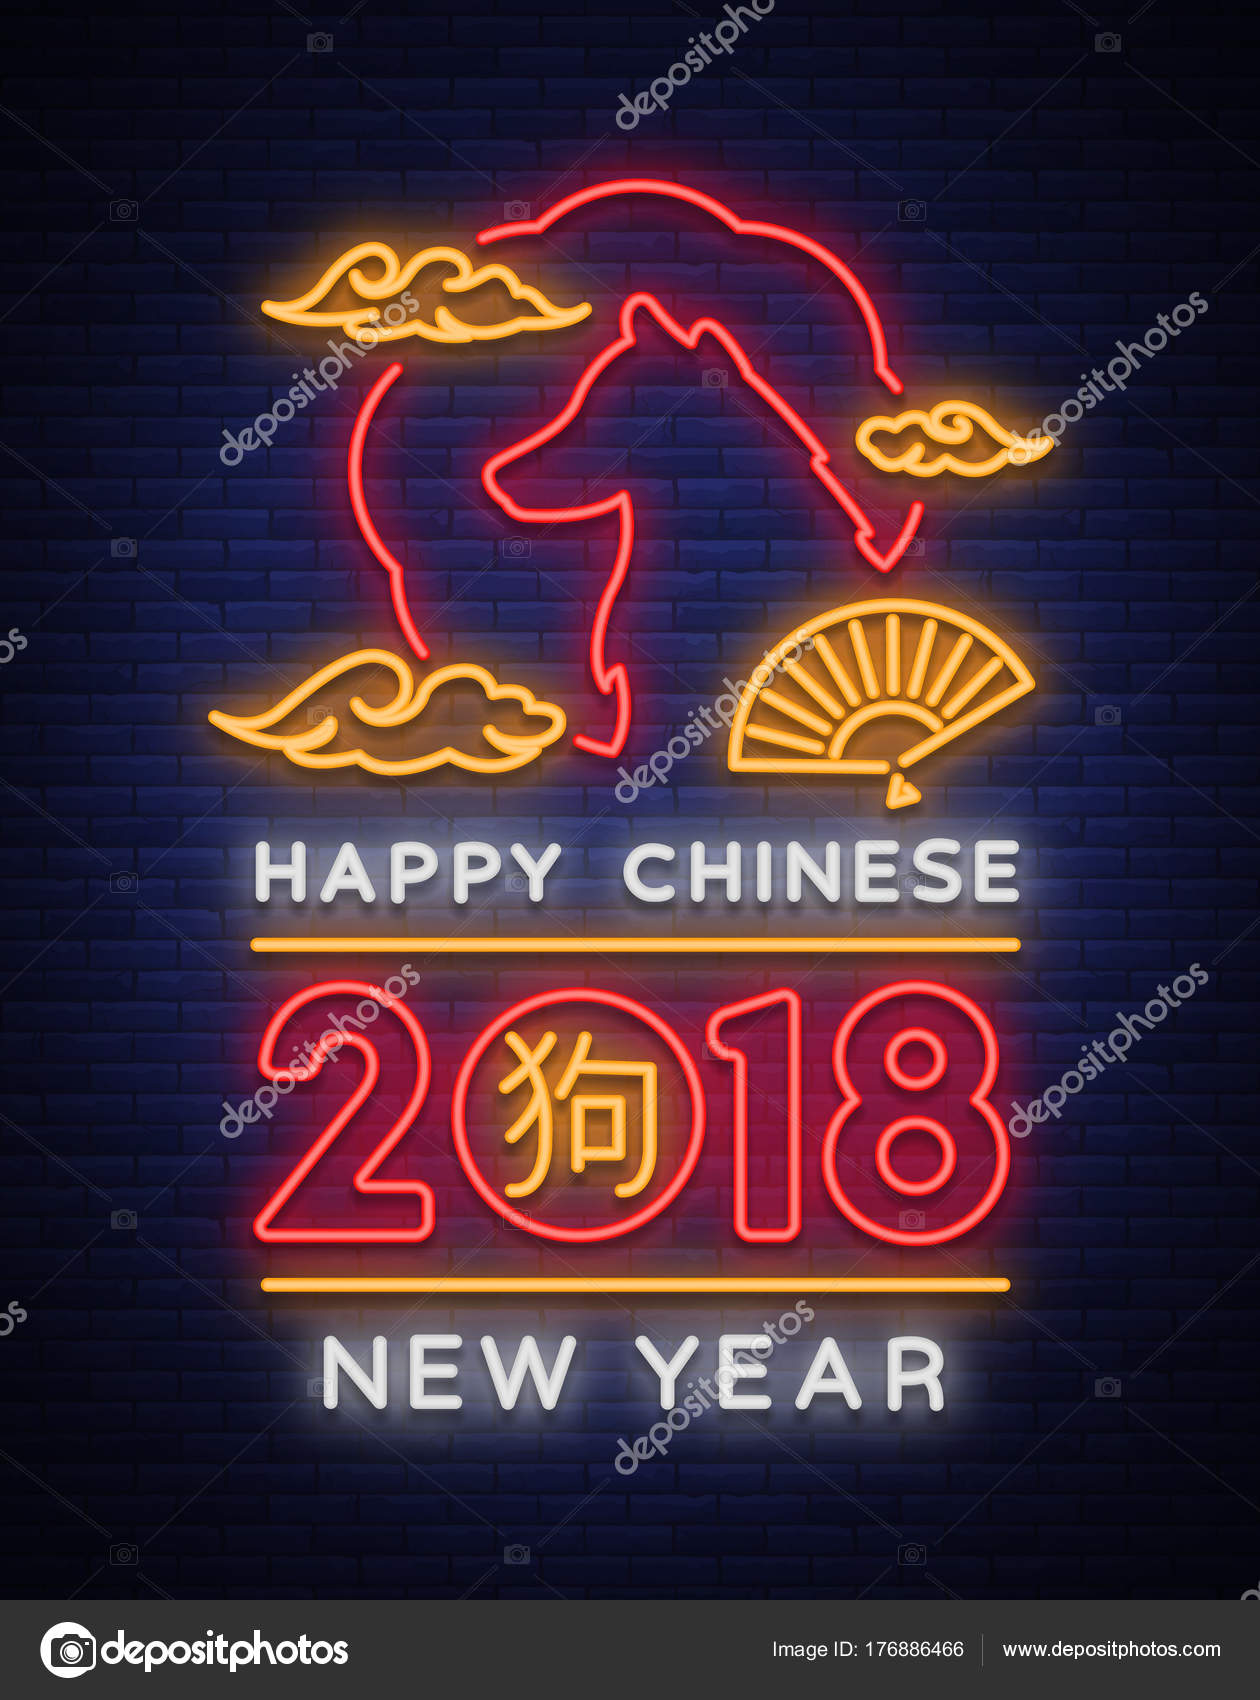 Happy Chinese New Year 2018 Plakat in Neon-Stil. Vektor-Illustration ...